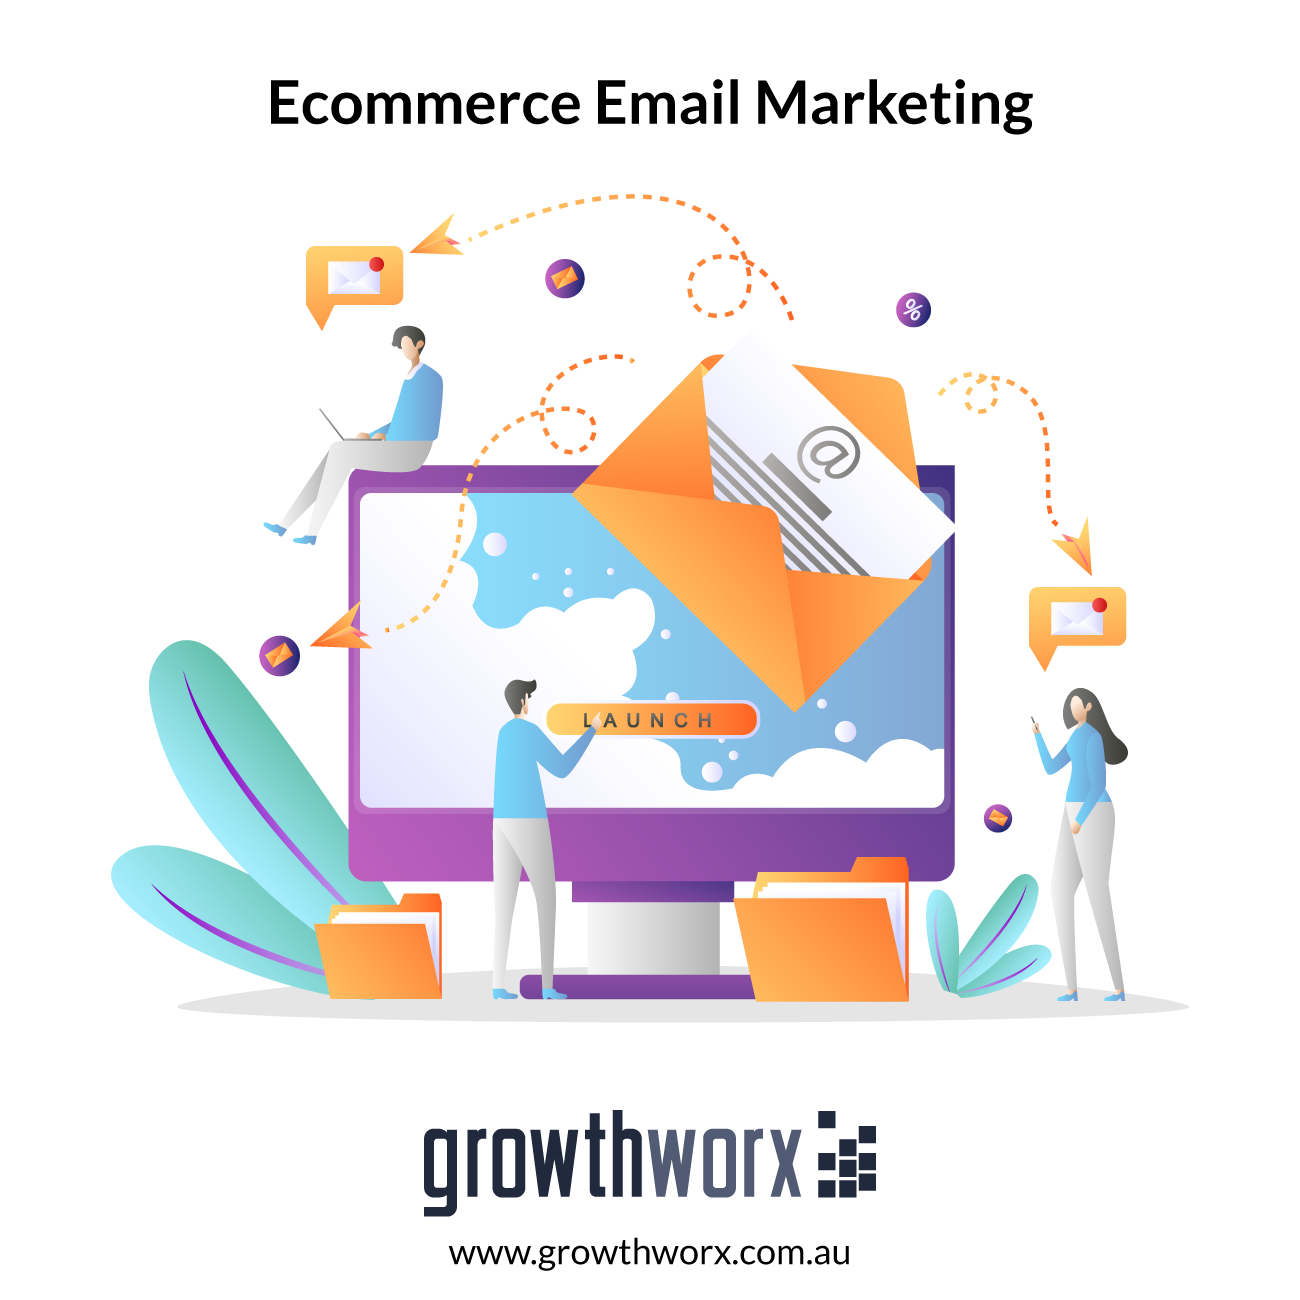 I will setup ecommerce email marketing flows in klaviyo 1